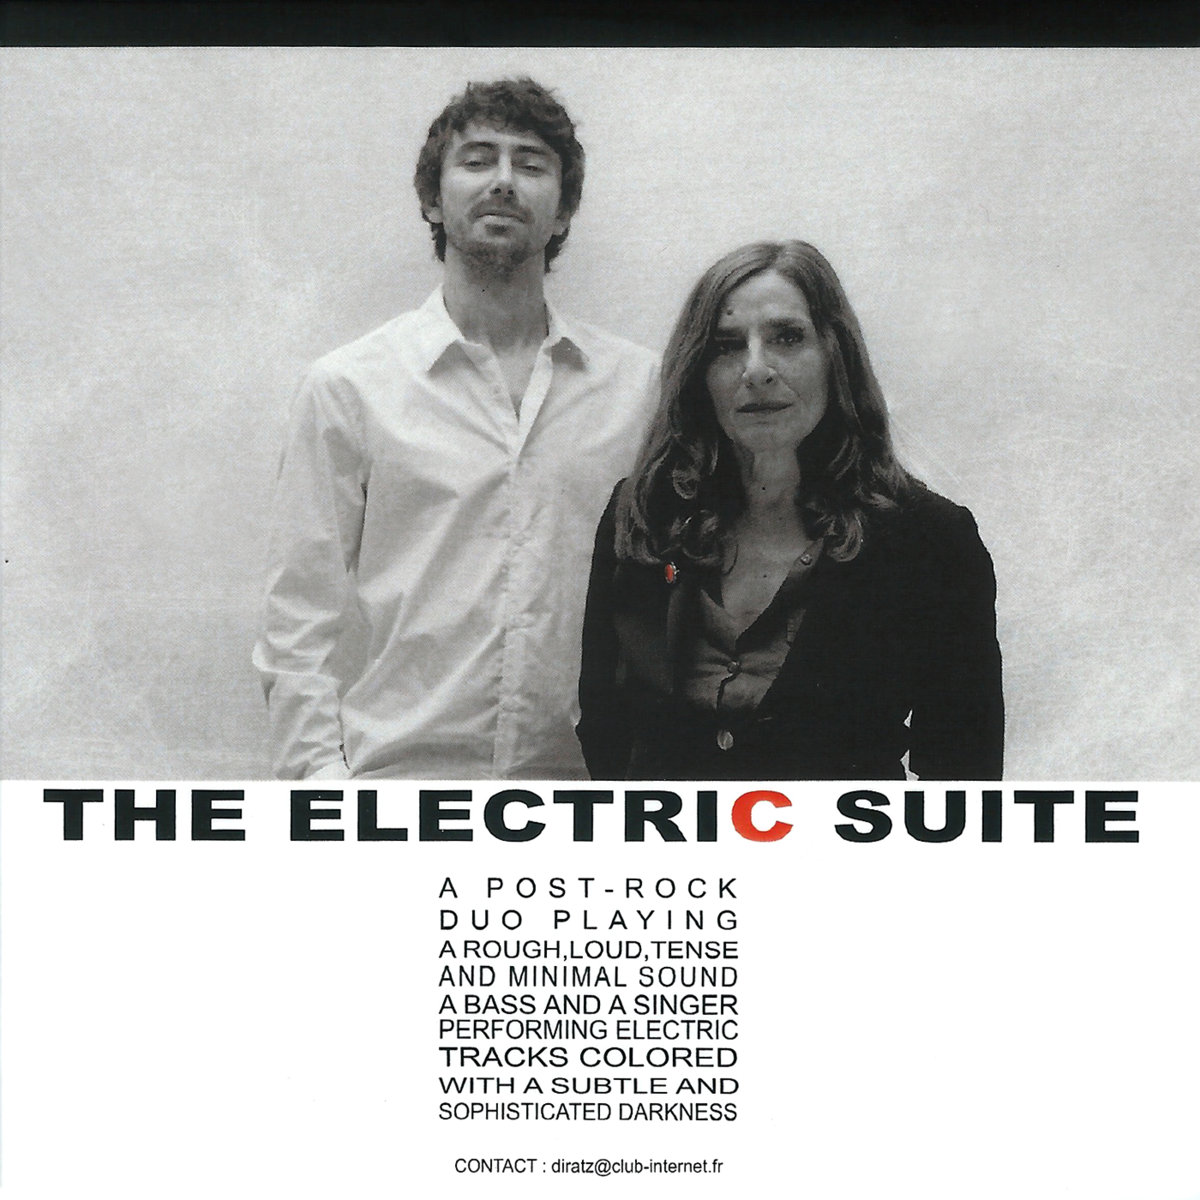 Carla Diratz & Corentin Coupe — The Electric Suite